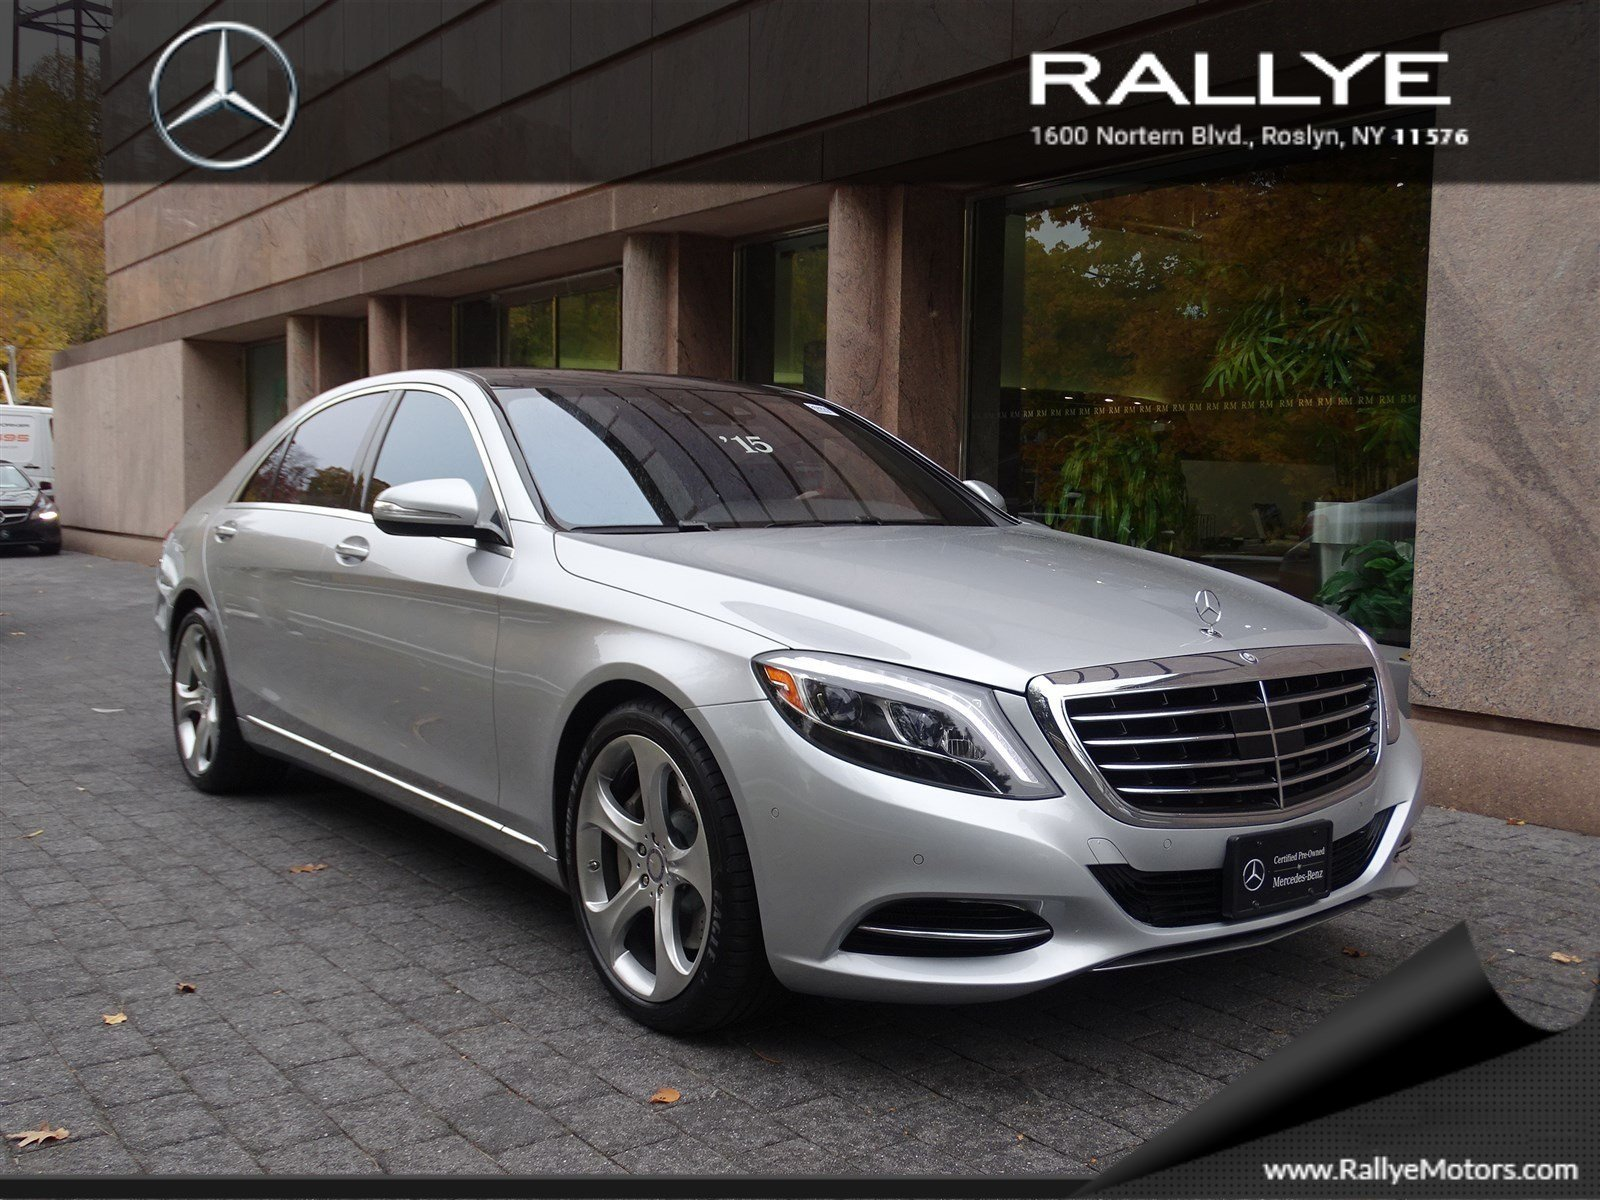 certified pre owned 2015 mercedes benz s class s550 sedan in roslyn 26859 rallye motors. Black Bedroom Furniture Sets. Home Design Ideas